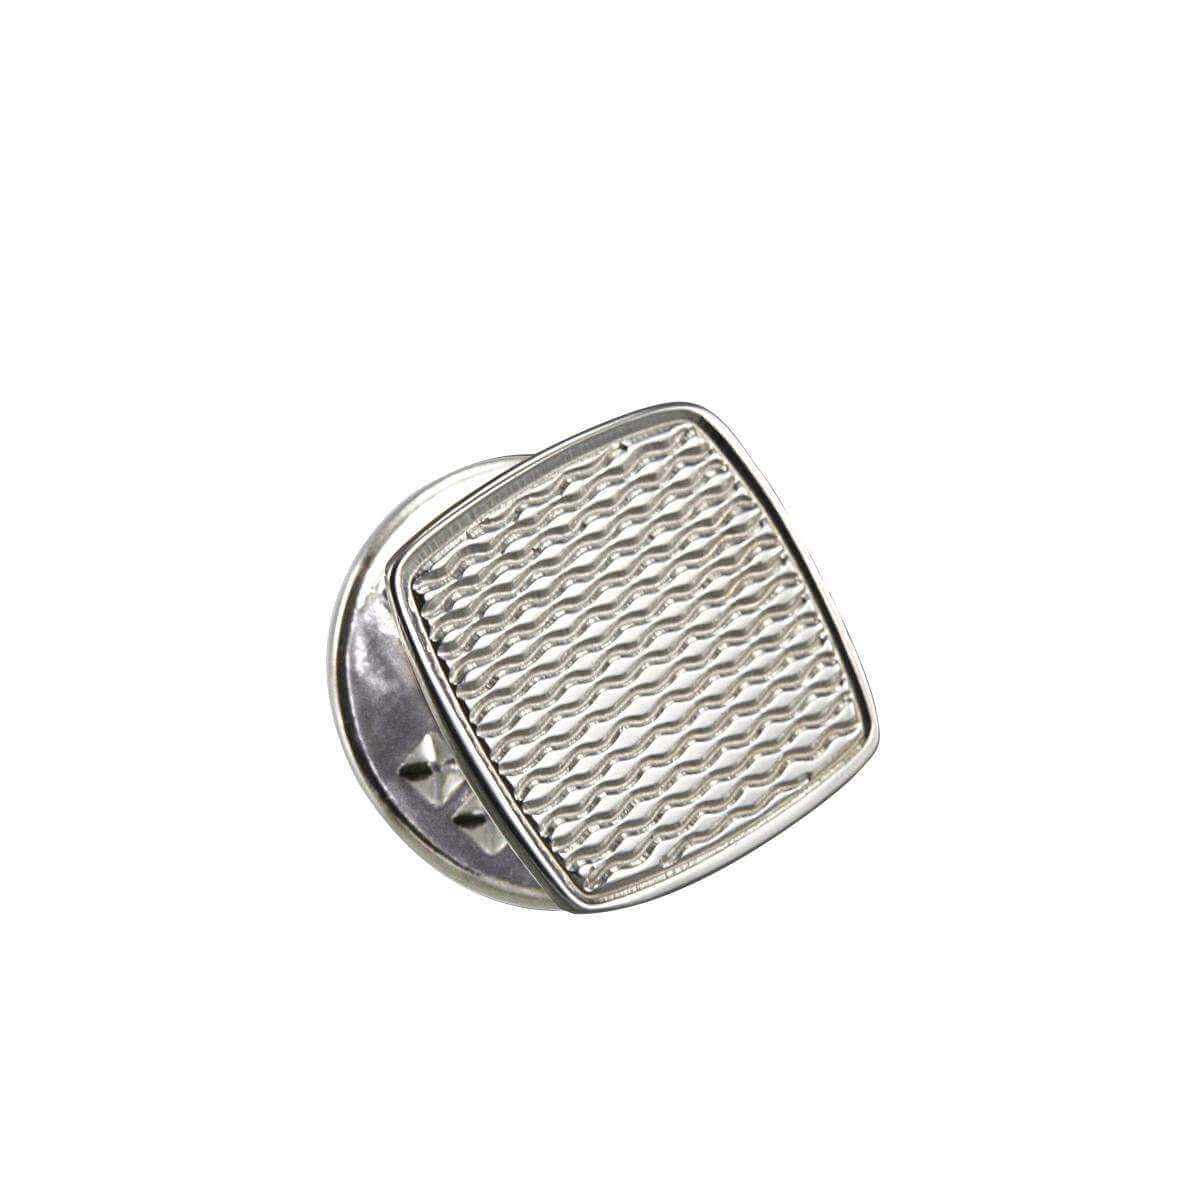 Sterling Silver Engine Turned Square Tie Tack